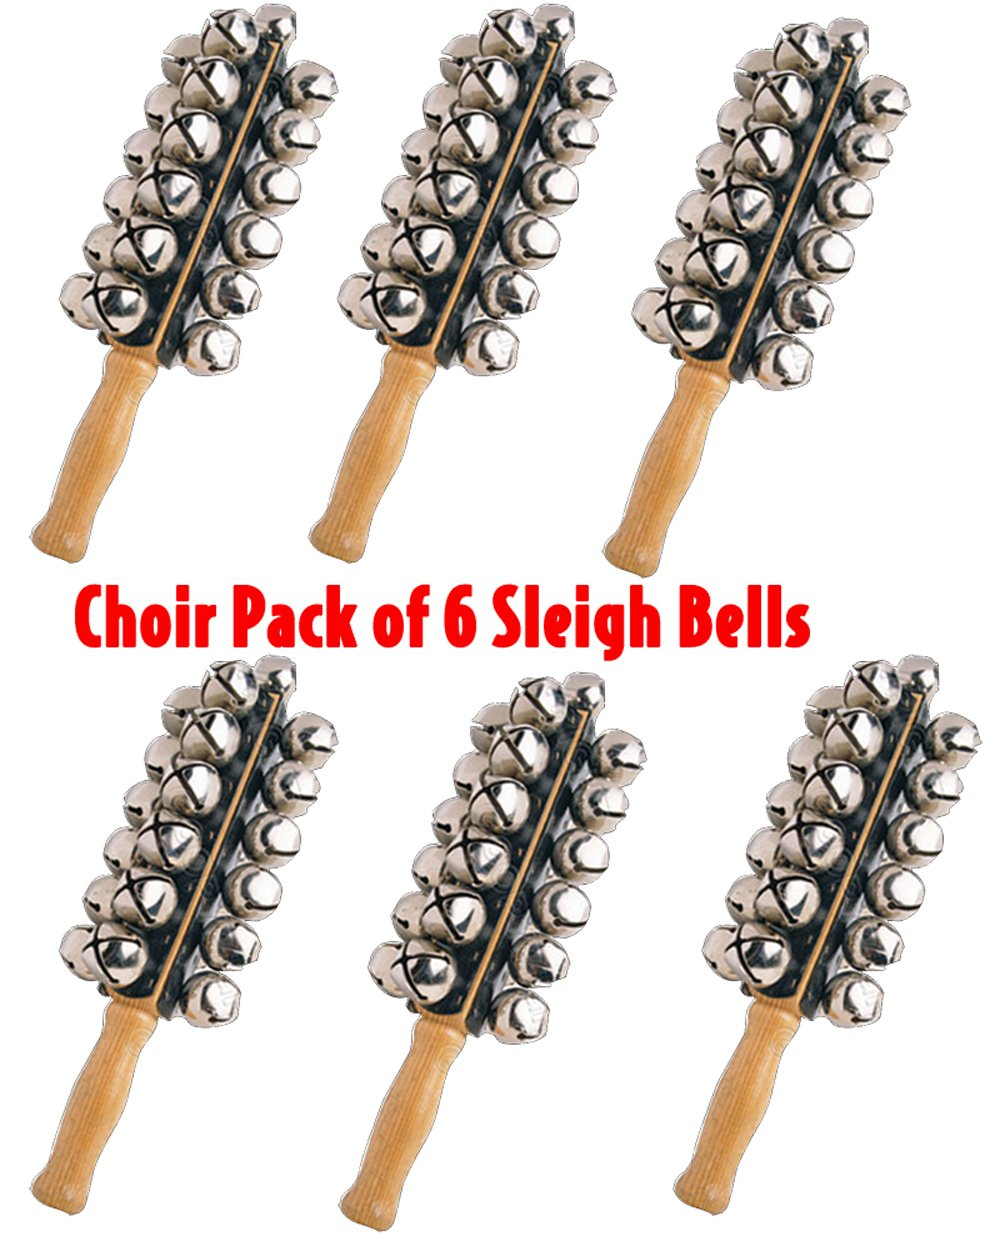 Performance Plus SBL-25-6 Choir Pack of 6 Includes 6 Professional, 25 Large Jingle Sleigh Bells on Maple Handle